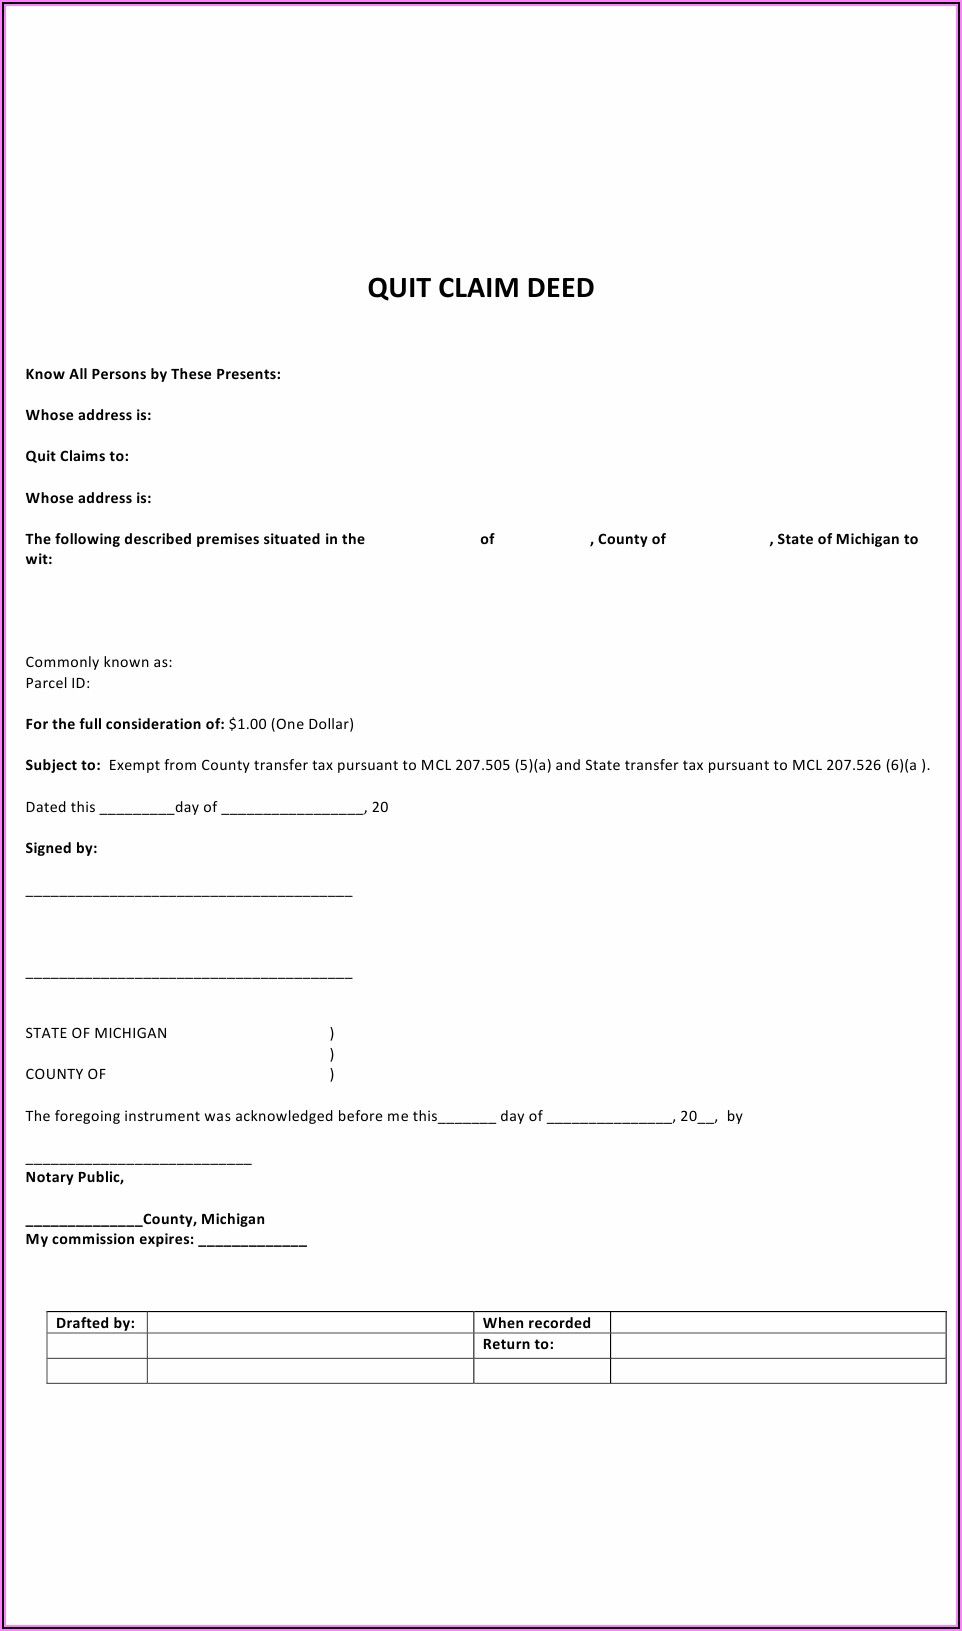 Where Can I Download A Quit Claim Deed Form